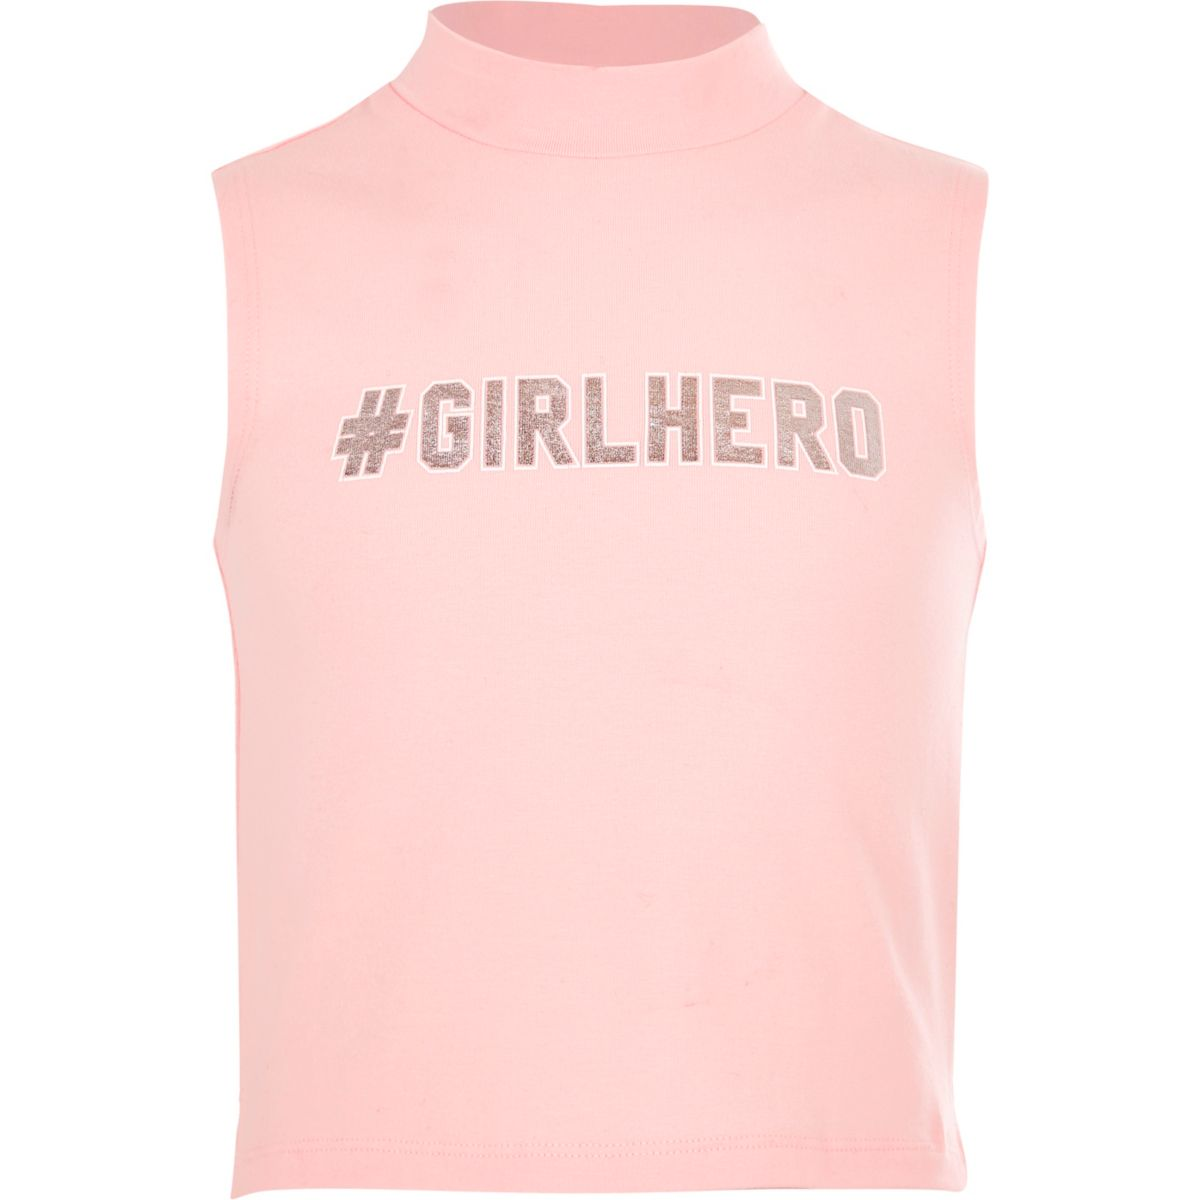 Girls '#Girlhero' turtleneck tank top